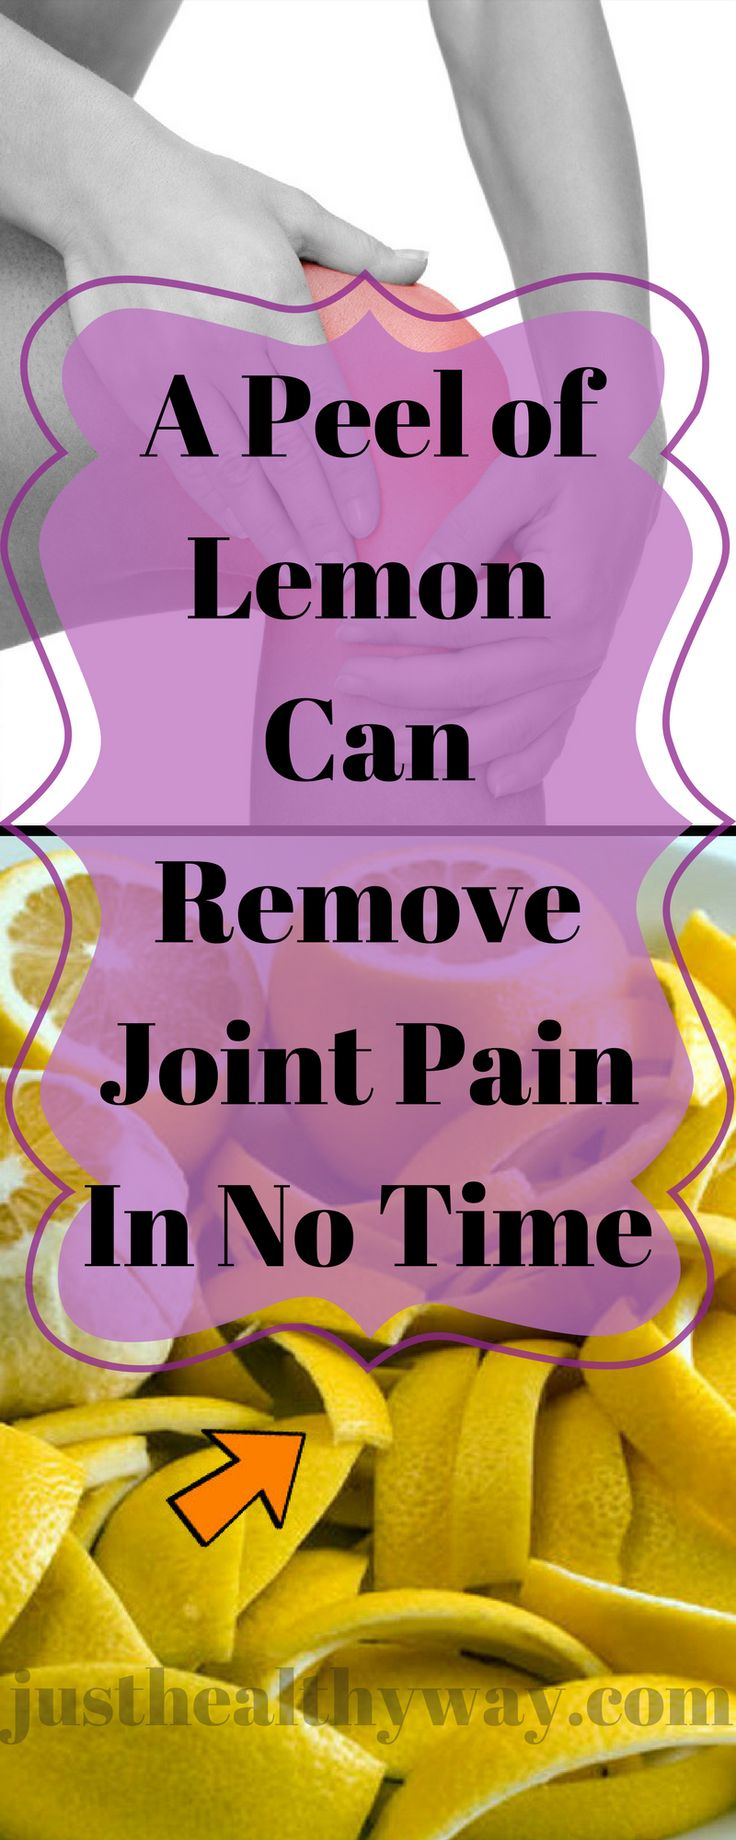 Joint agony is unquestionably one of the most common medical problems these days. There are many factors that can cause joint pain, including wounds in the bones, tendons, and ligaments...